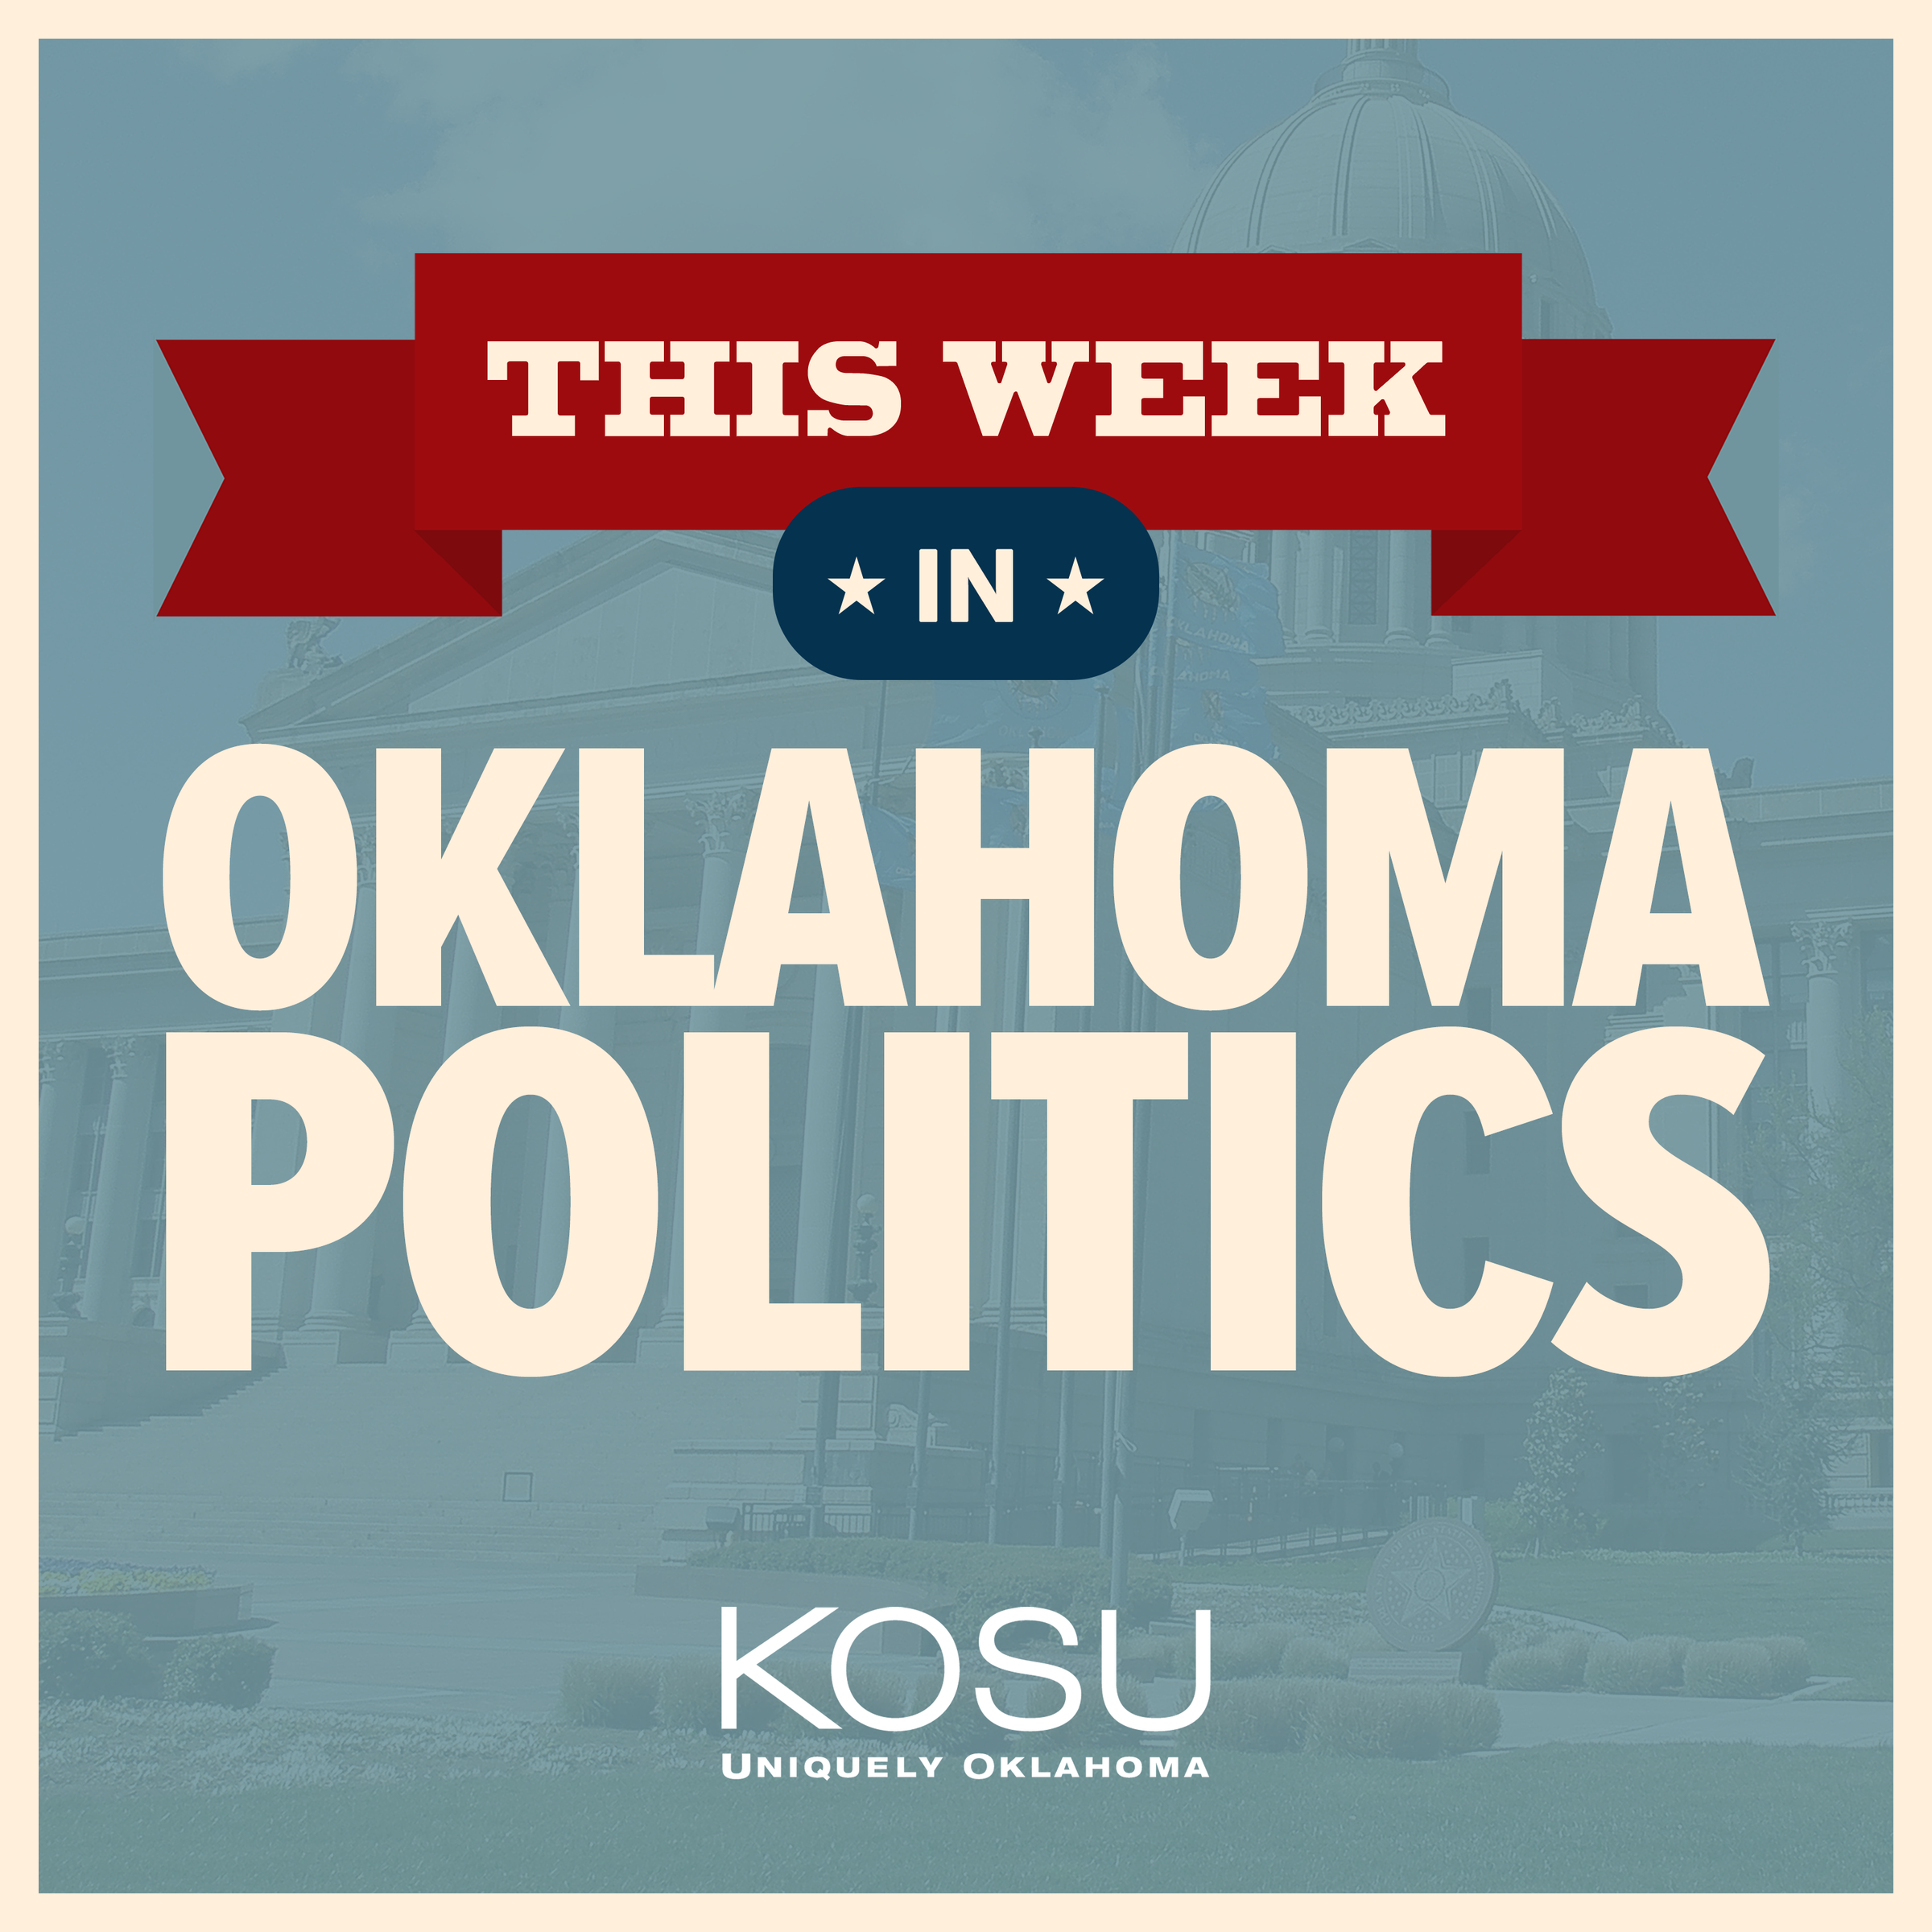 ... KOSU's Michael Cross talks with Republican Political Consultant Neva  Hill and ACLU Oklahoma Executive Director Ryan Kiesel about State Question  794 also ...